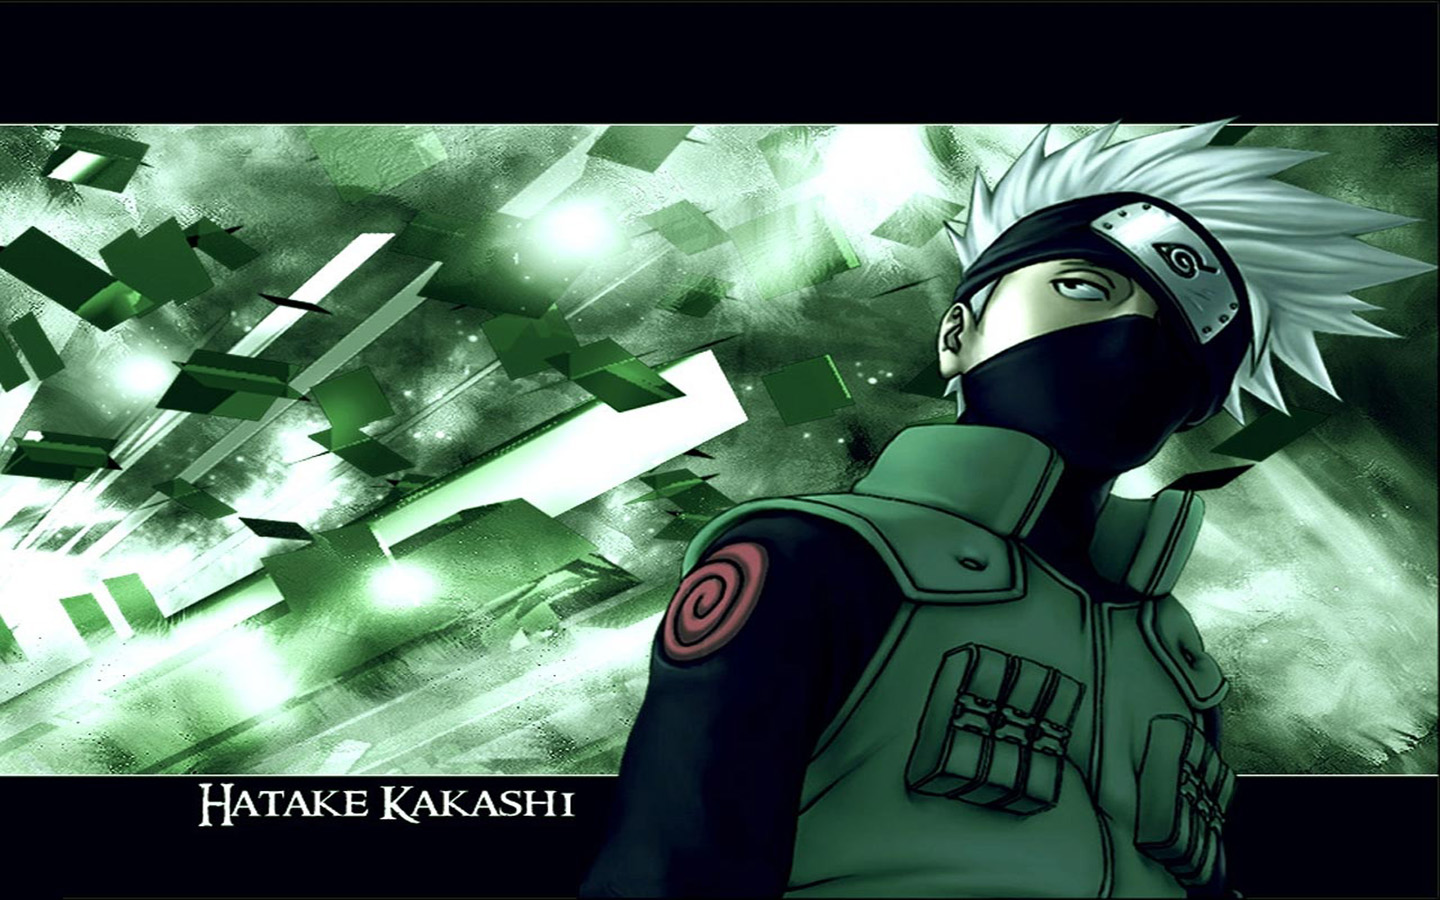 Download the Naruto anime wallpaper titled Hatake Kakashi 1440x900